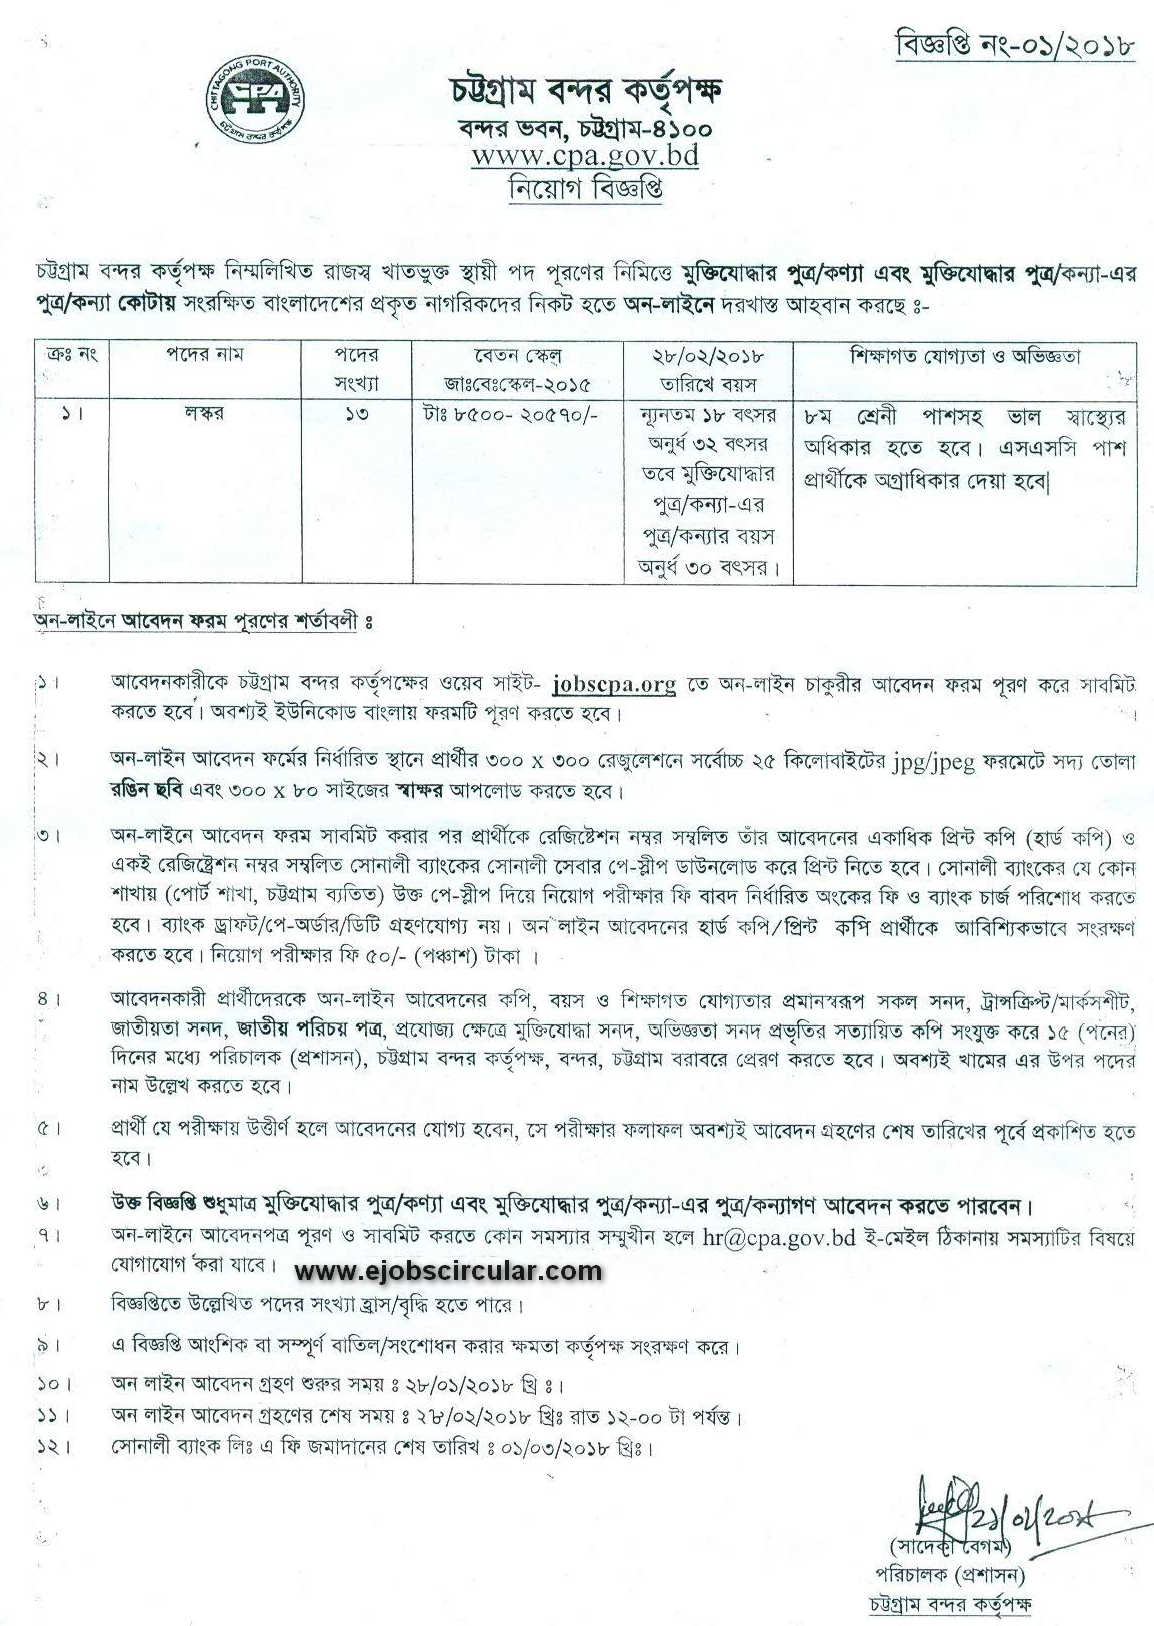 Chittagong Port Authority CPA job circular